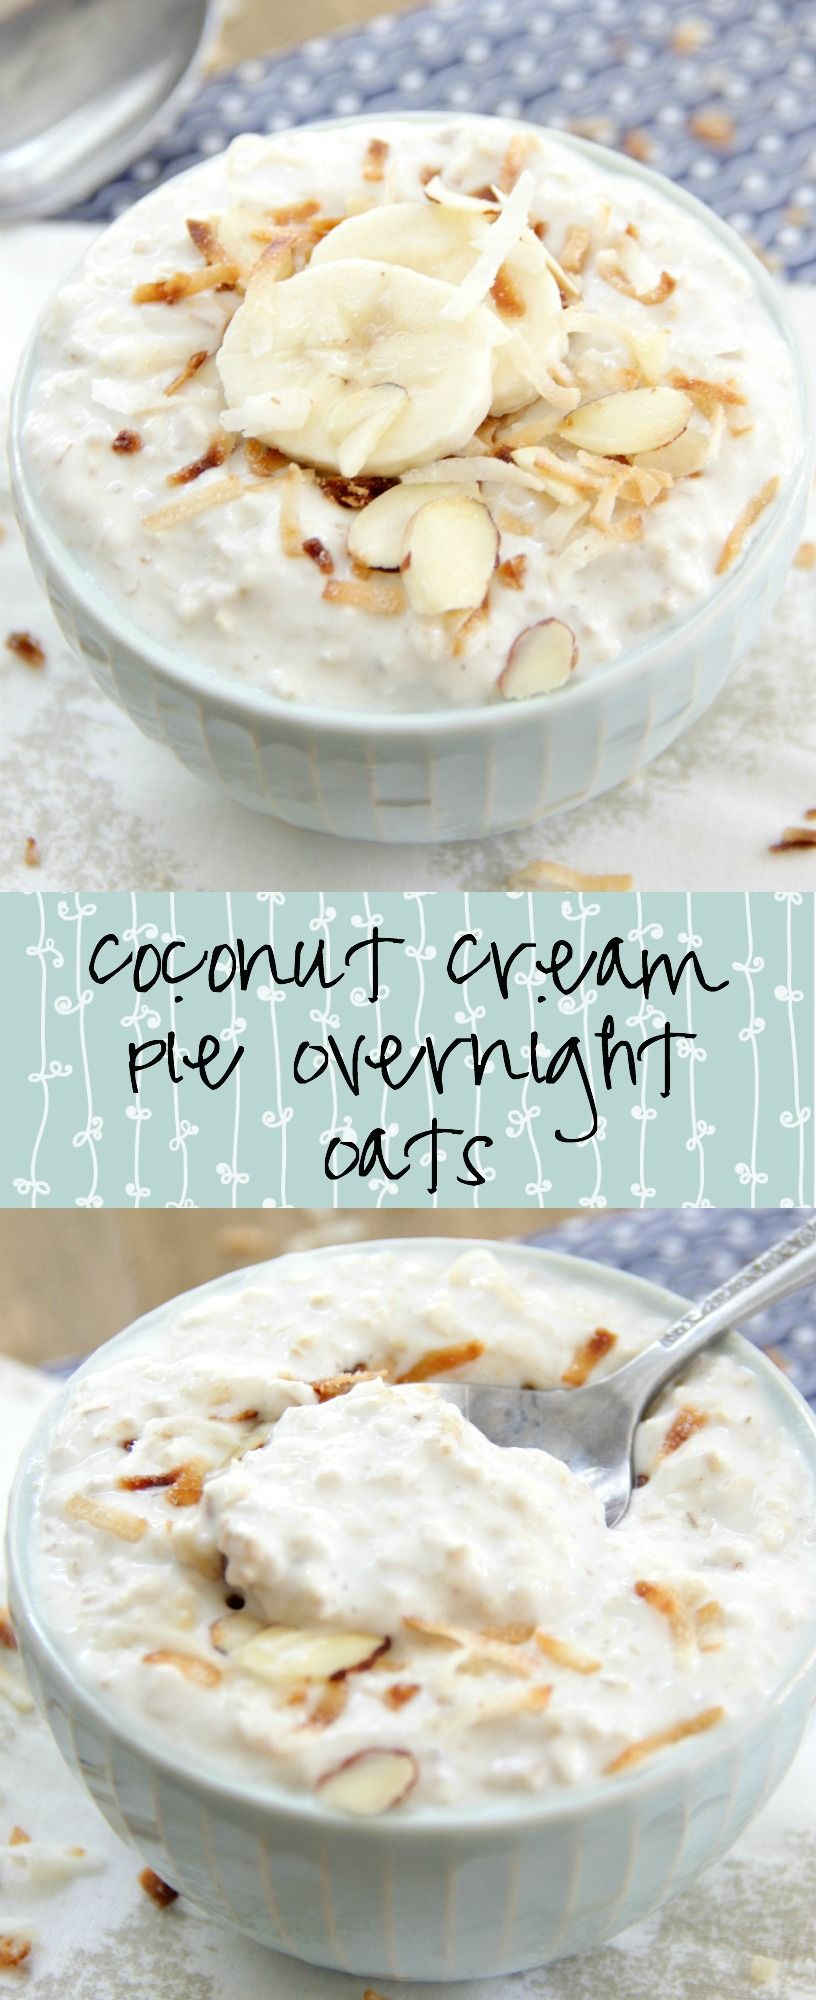 Coconut Cream Pie Overnight Oats Eat Drink Love Coconut Recipes Recipes Yummy Breakfast